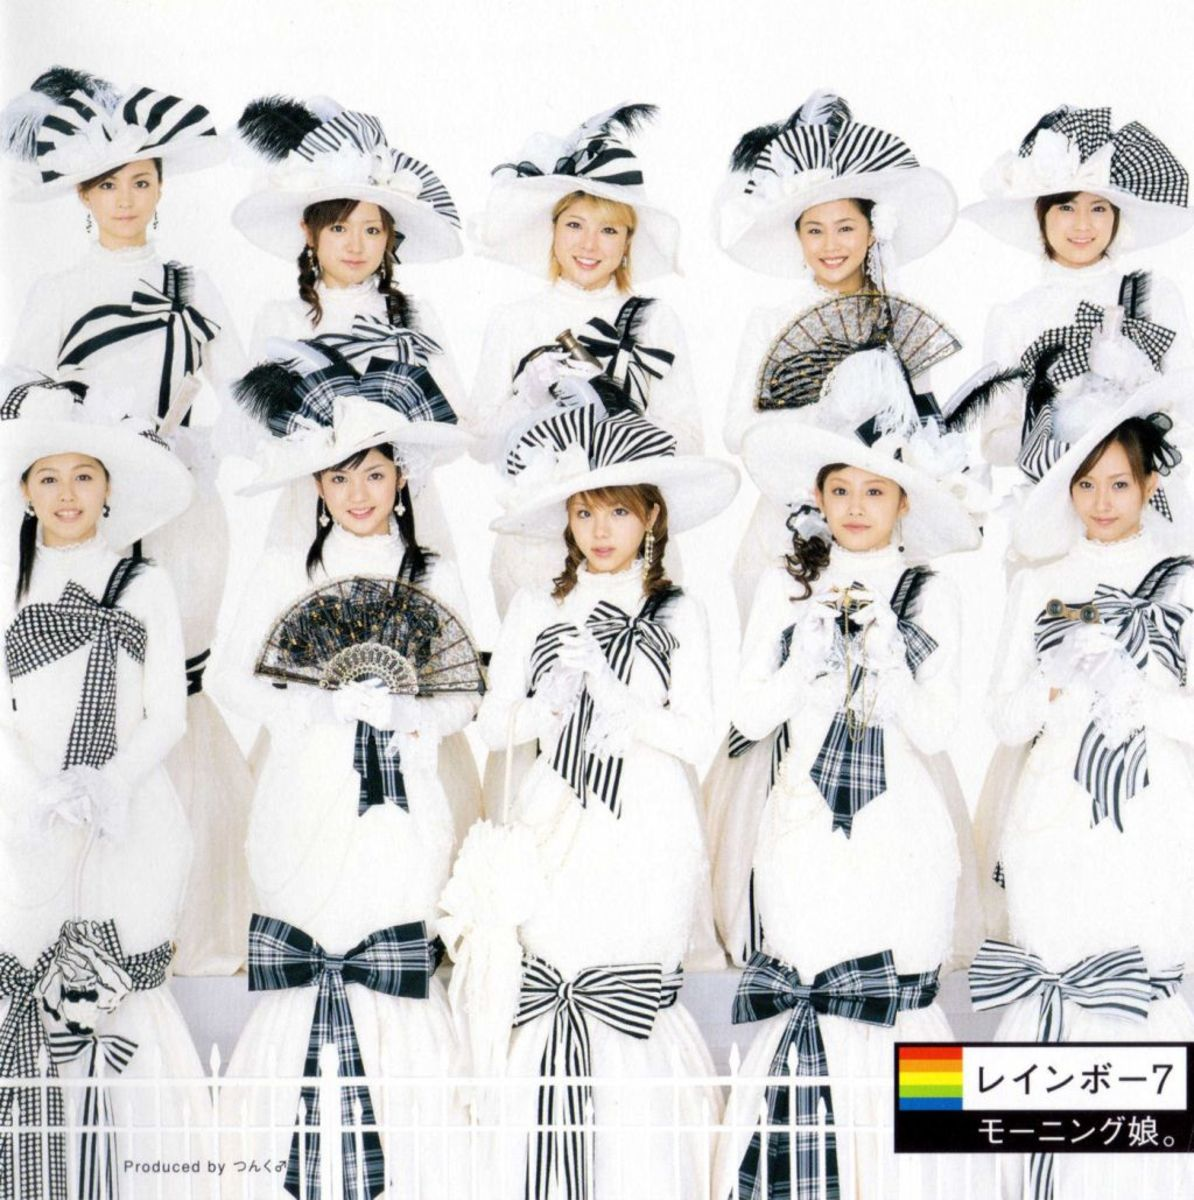 A Review of the Album Rainbow 7 by Morning Musume Released in 2006